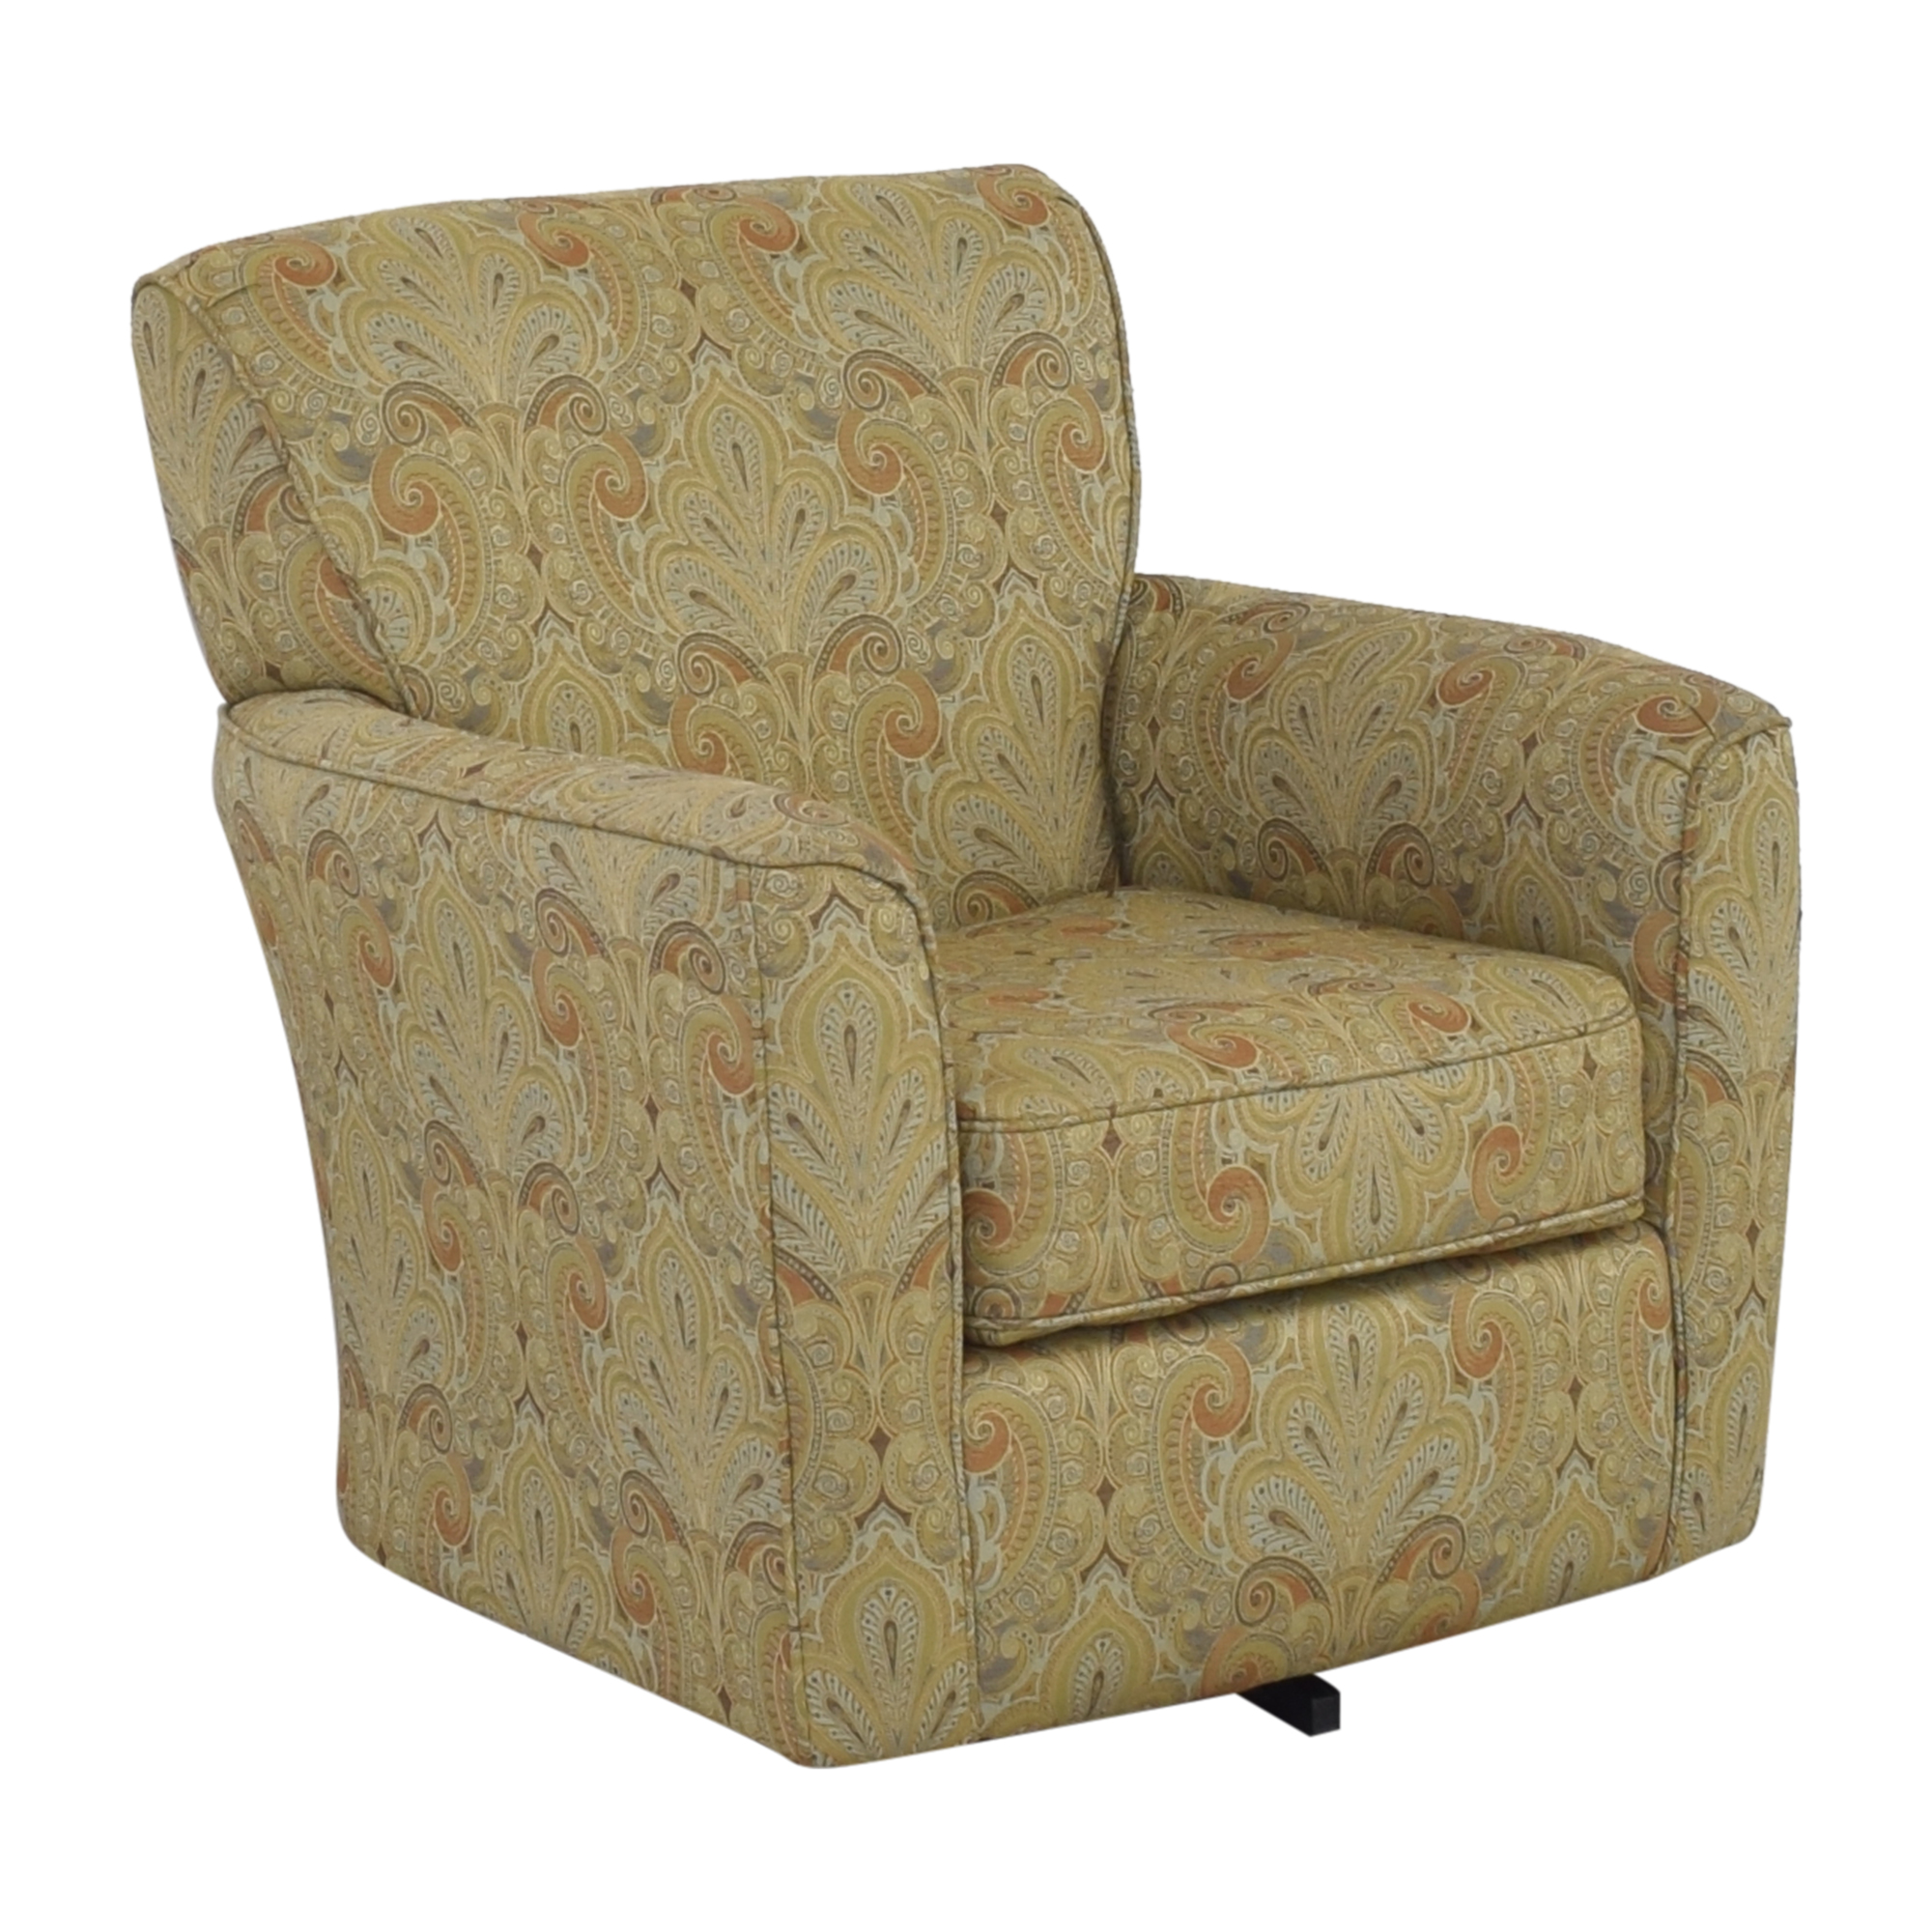 Raymour & Flanigan Raymour & Flanigan Swivel Chair discount